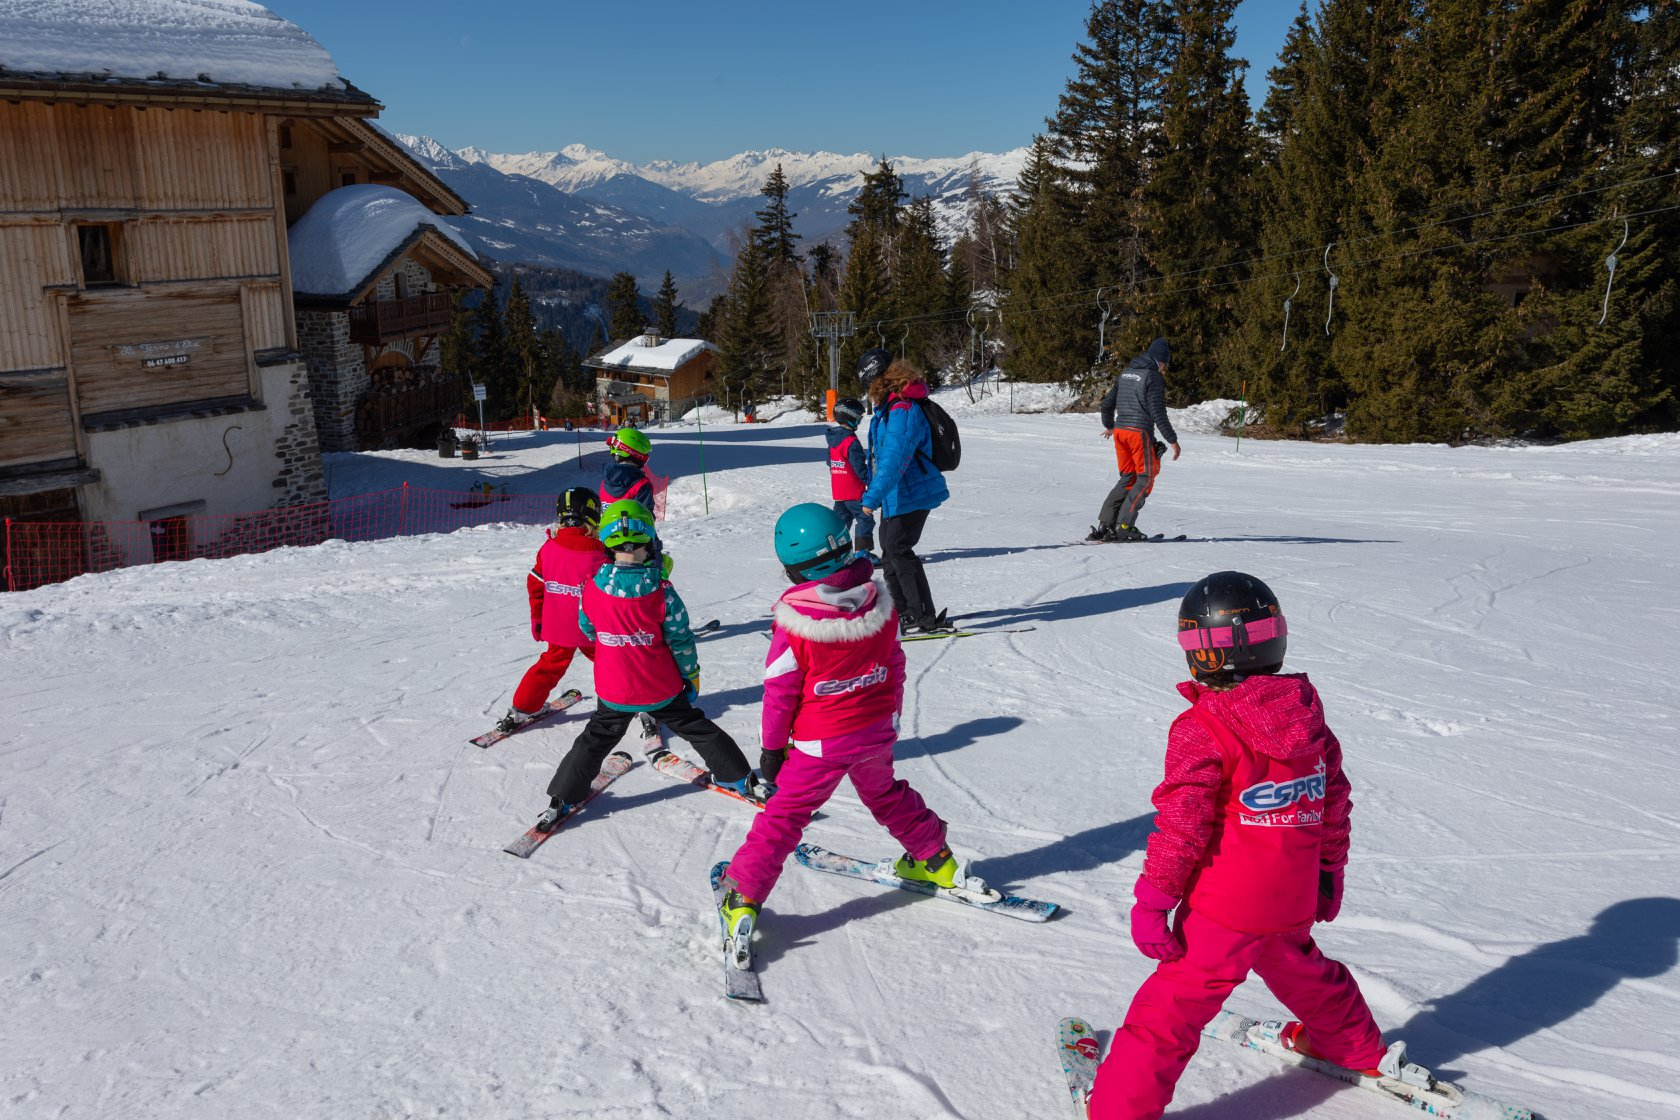 children on the snow at ski practice all wearing pink jackets and trousers with green, black and blue helmets listening to adults wearing blue jacket and backpack